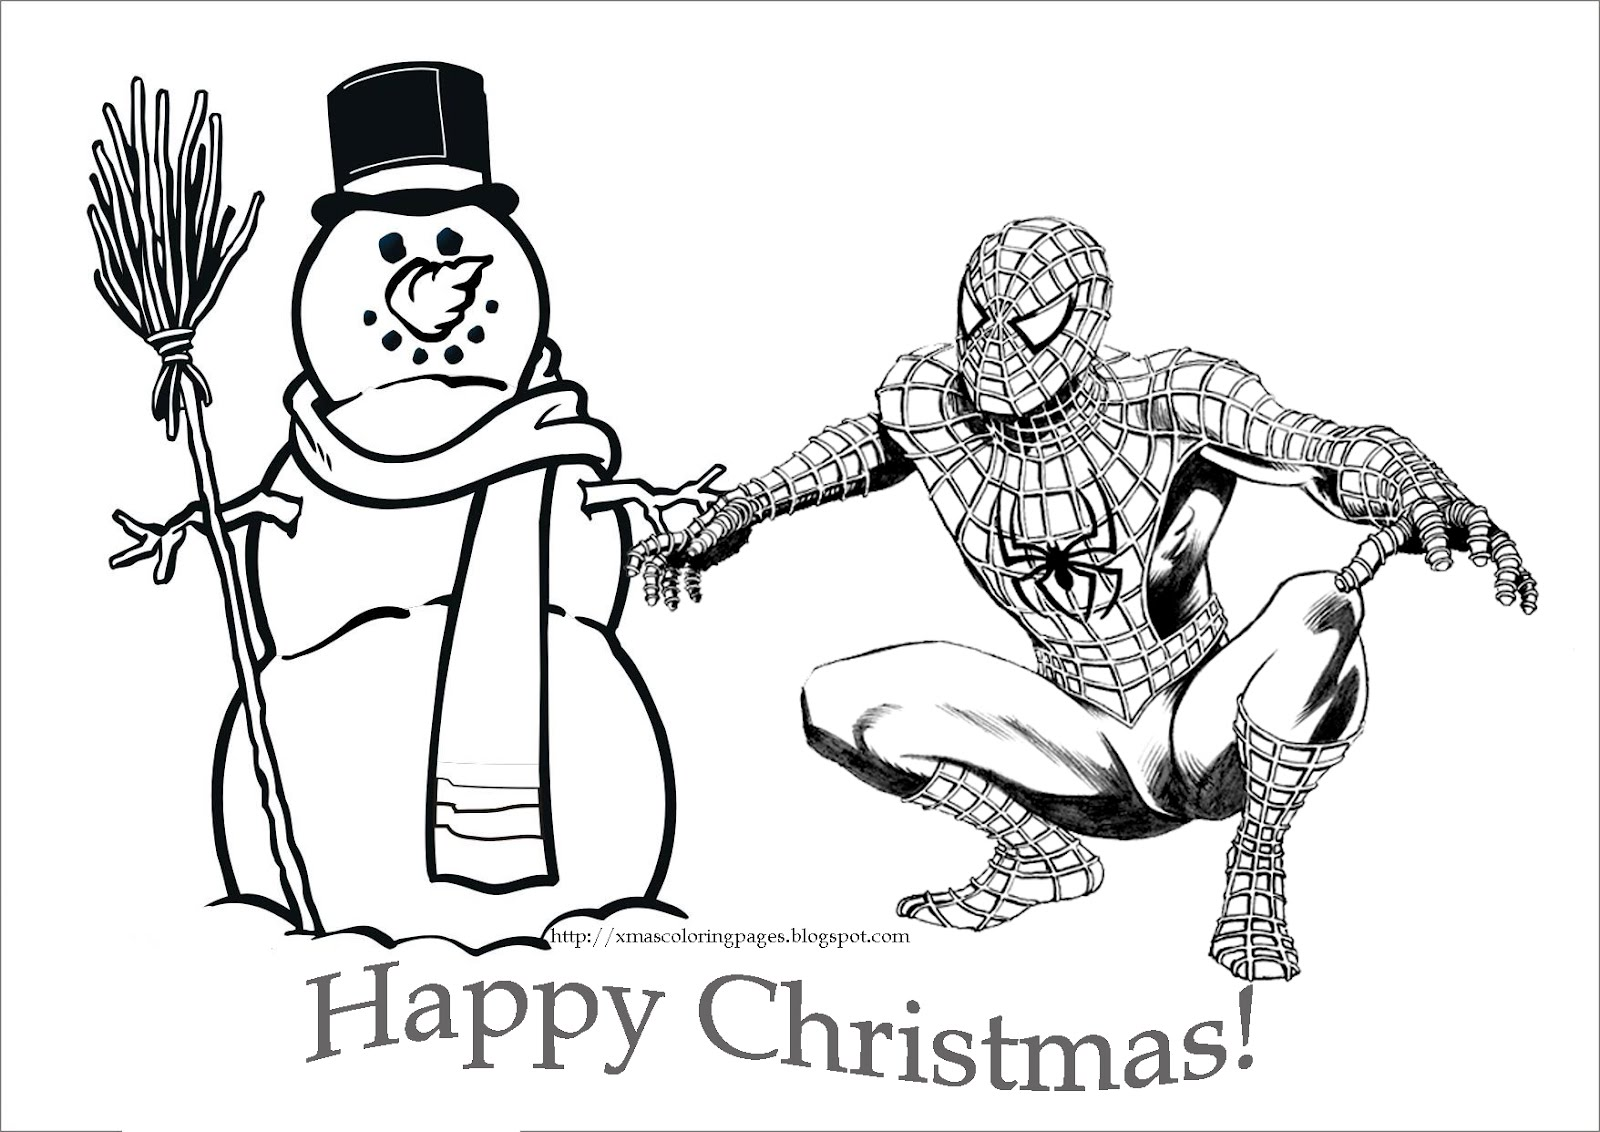 SPIDERMAN COLORING: SPIDERMAN CHRISTMAS COLORING PAGE